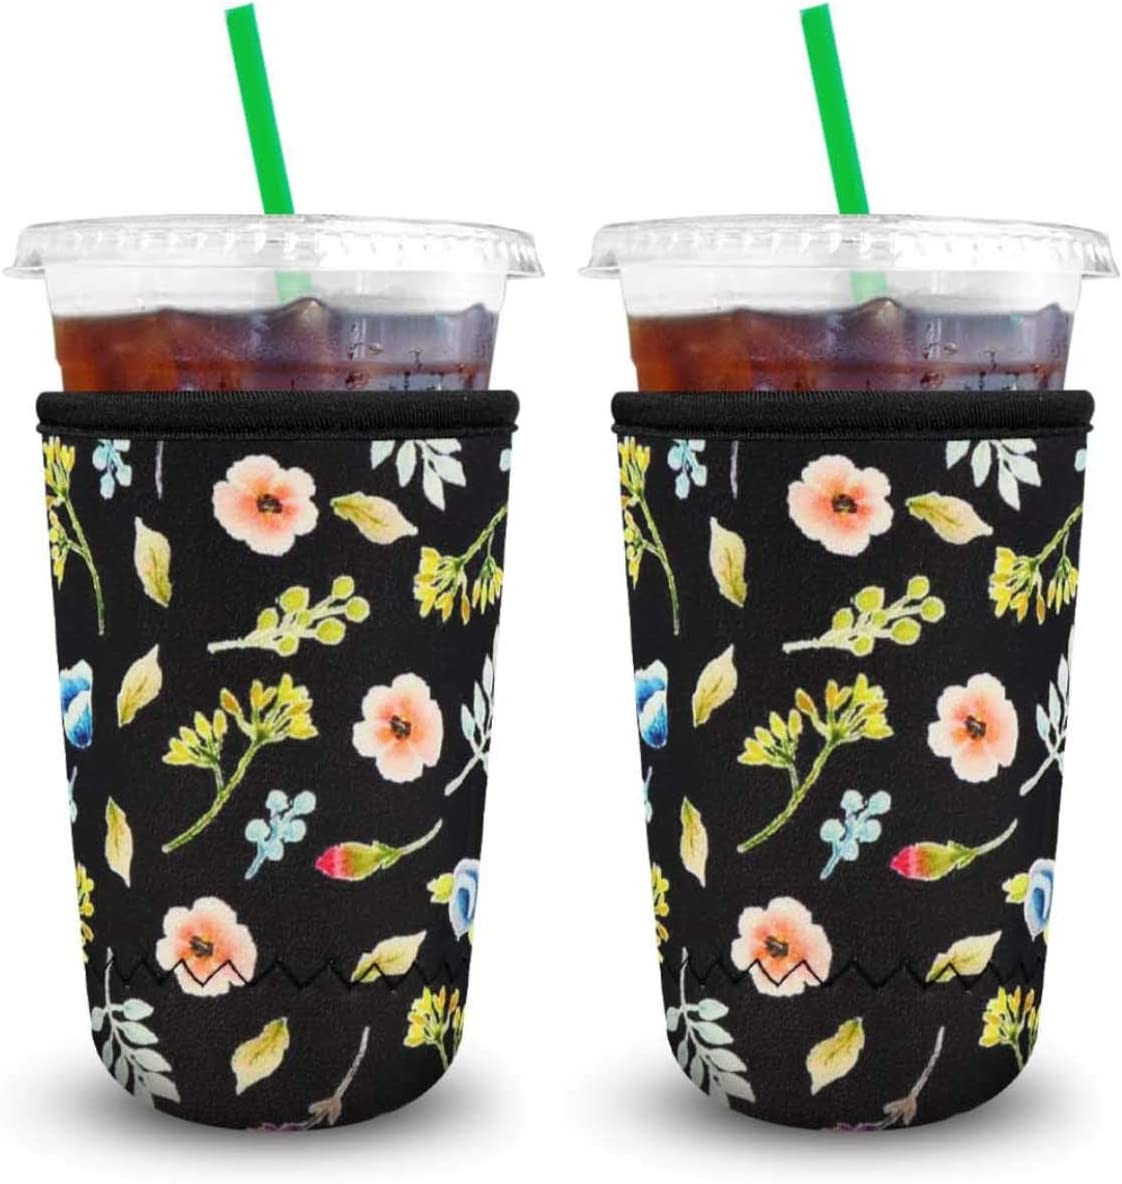 XccMe Reusable Iced Coffee Sleeves Neoprene Insulator Cup Cover for Cold Drinks,Beverages Holder,Ideal for Dunkin Donuts, Starbucks Coffee, McDonalds (Black Flower Large 32oz)